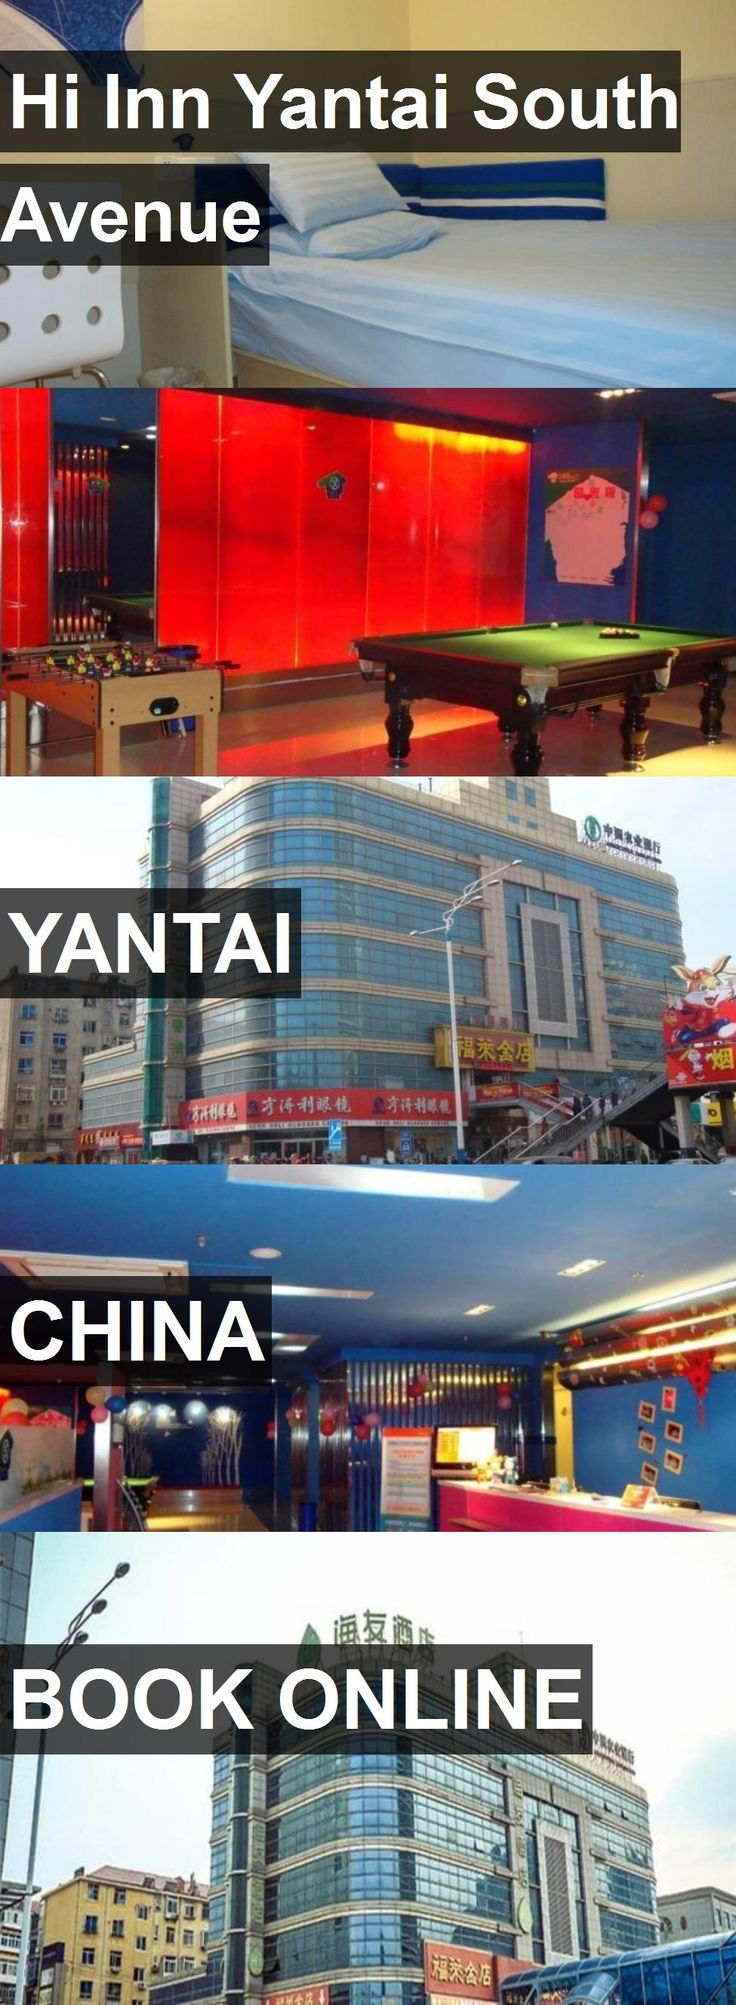 Hotel Hi Inn Yantai South Avenue in Yantai, China. For more information, photos, reviews and best prices please follow the link. #China #Yantai #travel #vacation #hotel